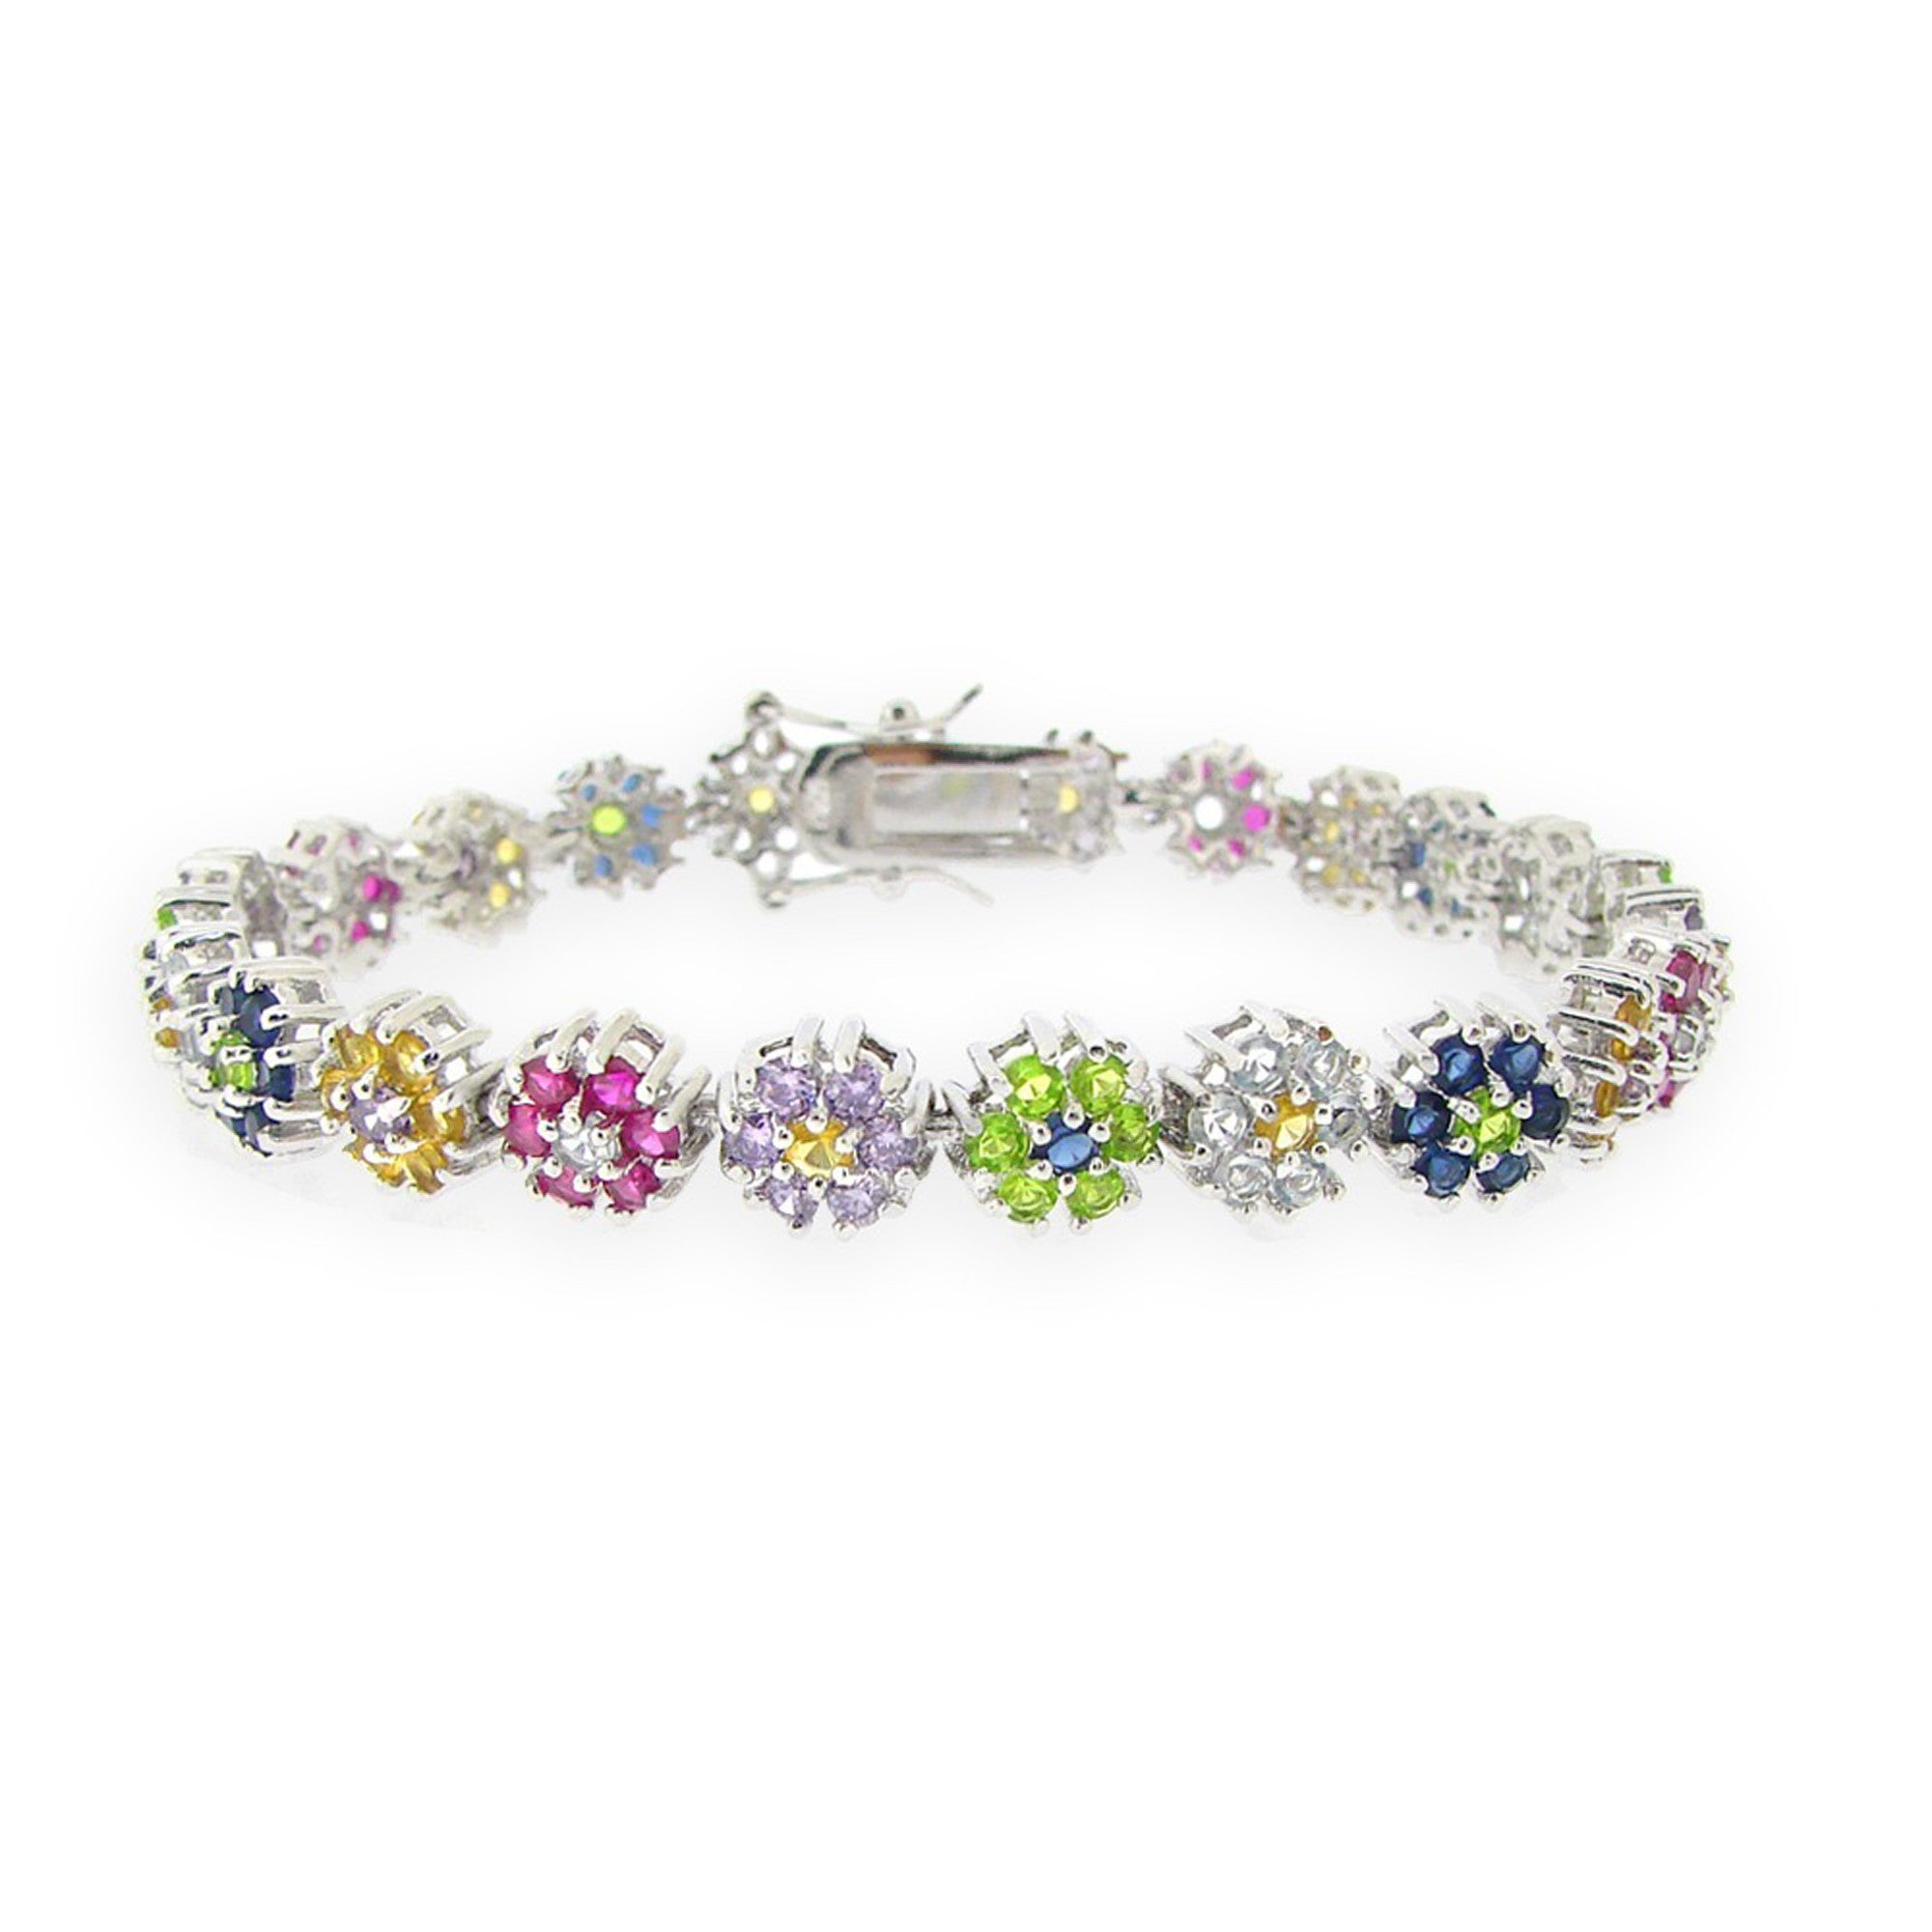 Flower Linked Bracelet With Cubic Zirconia - 8 Inches